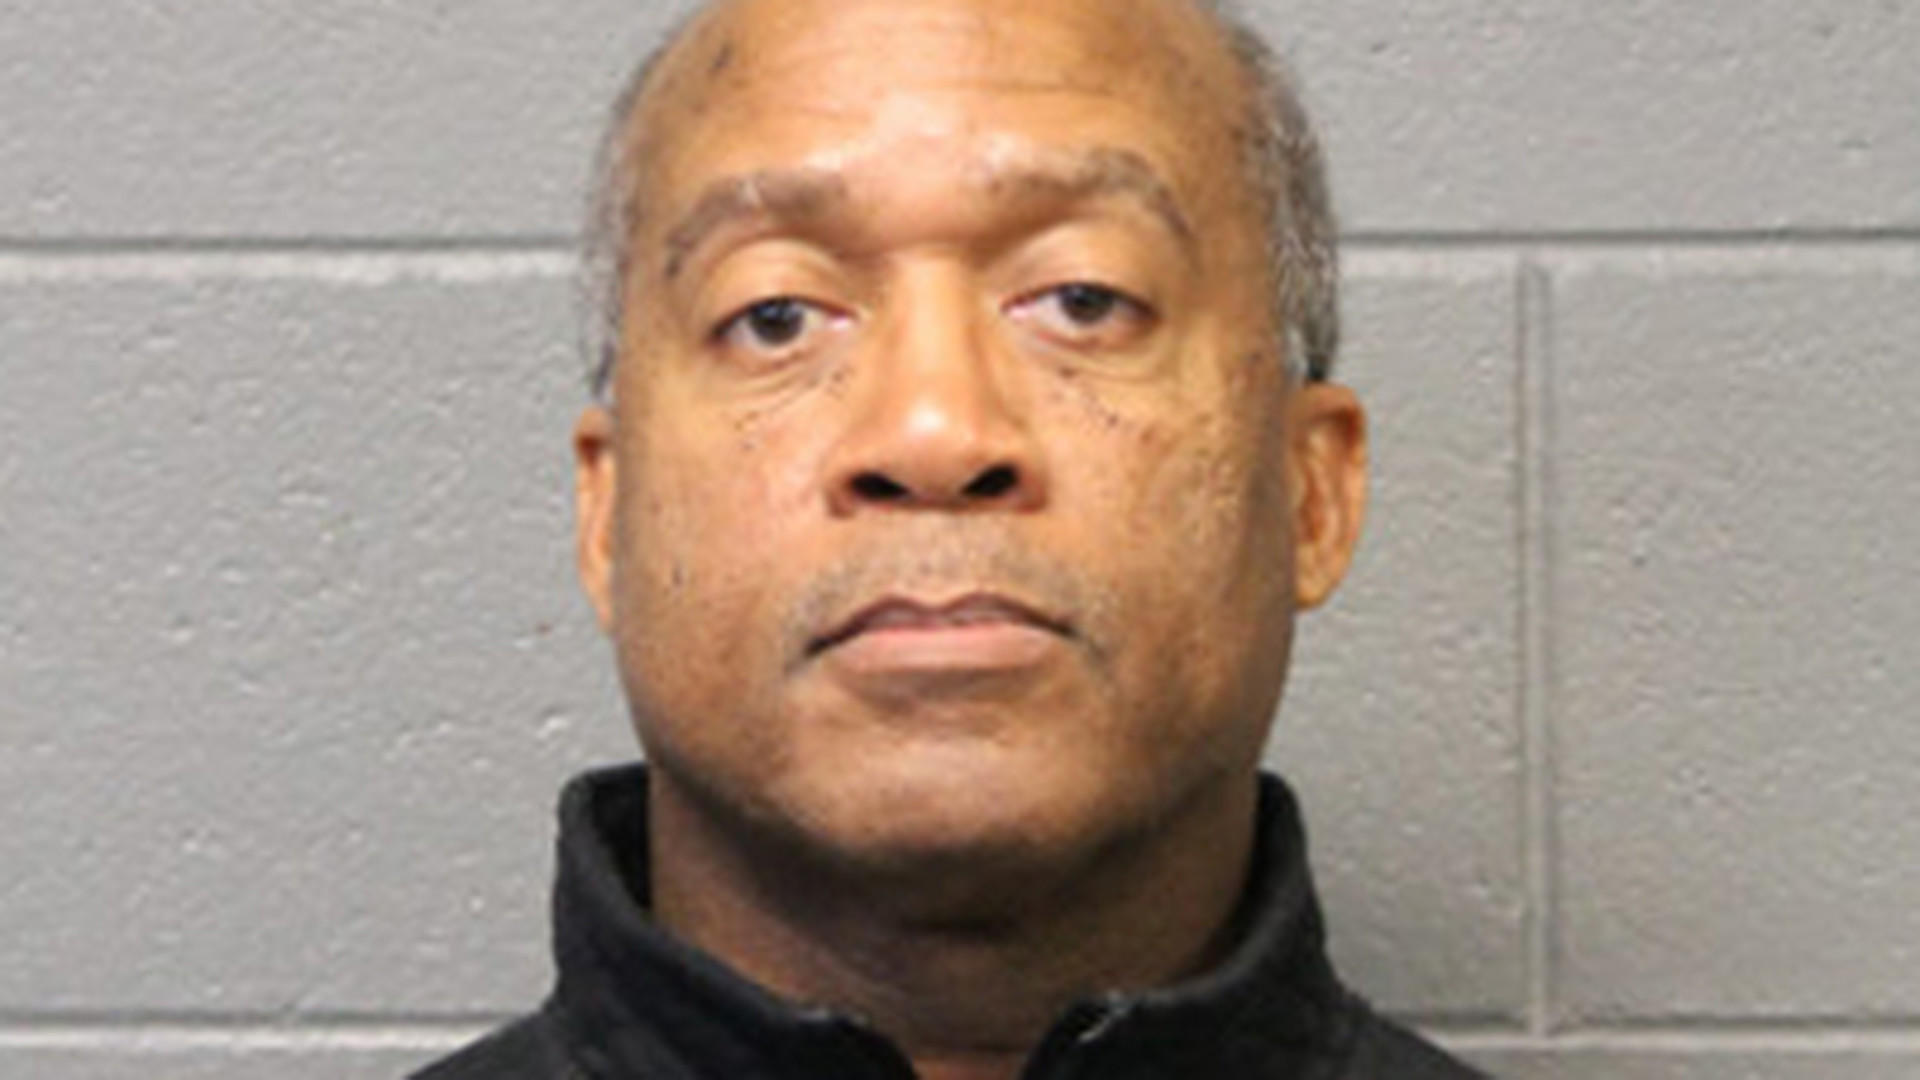 Former Chicago cop charged with on-duty sexual abuse ...